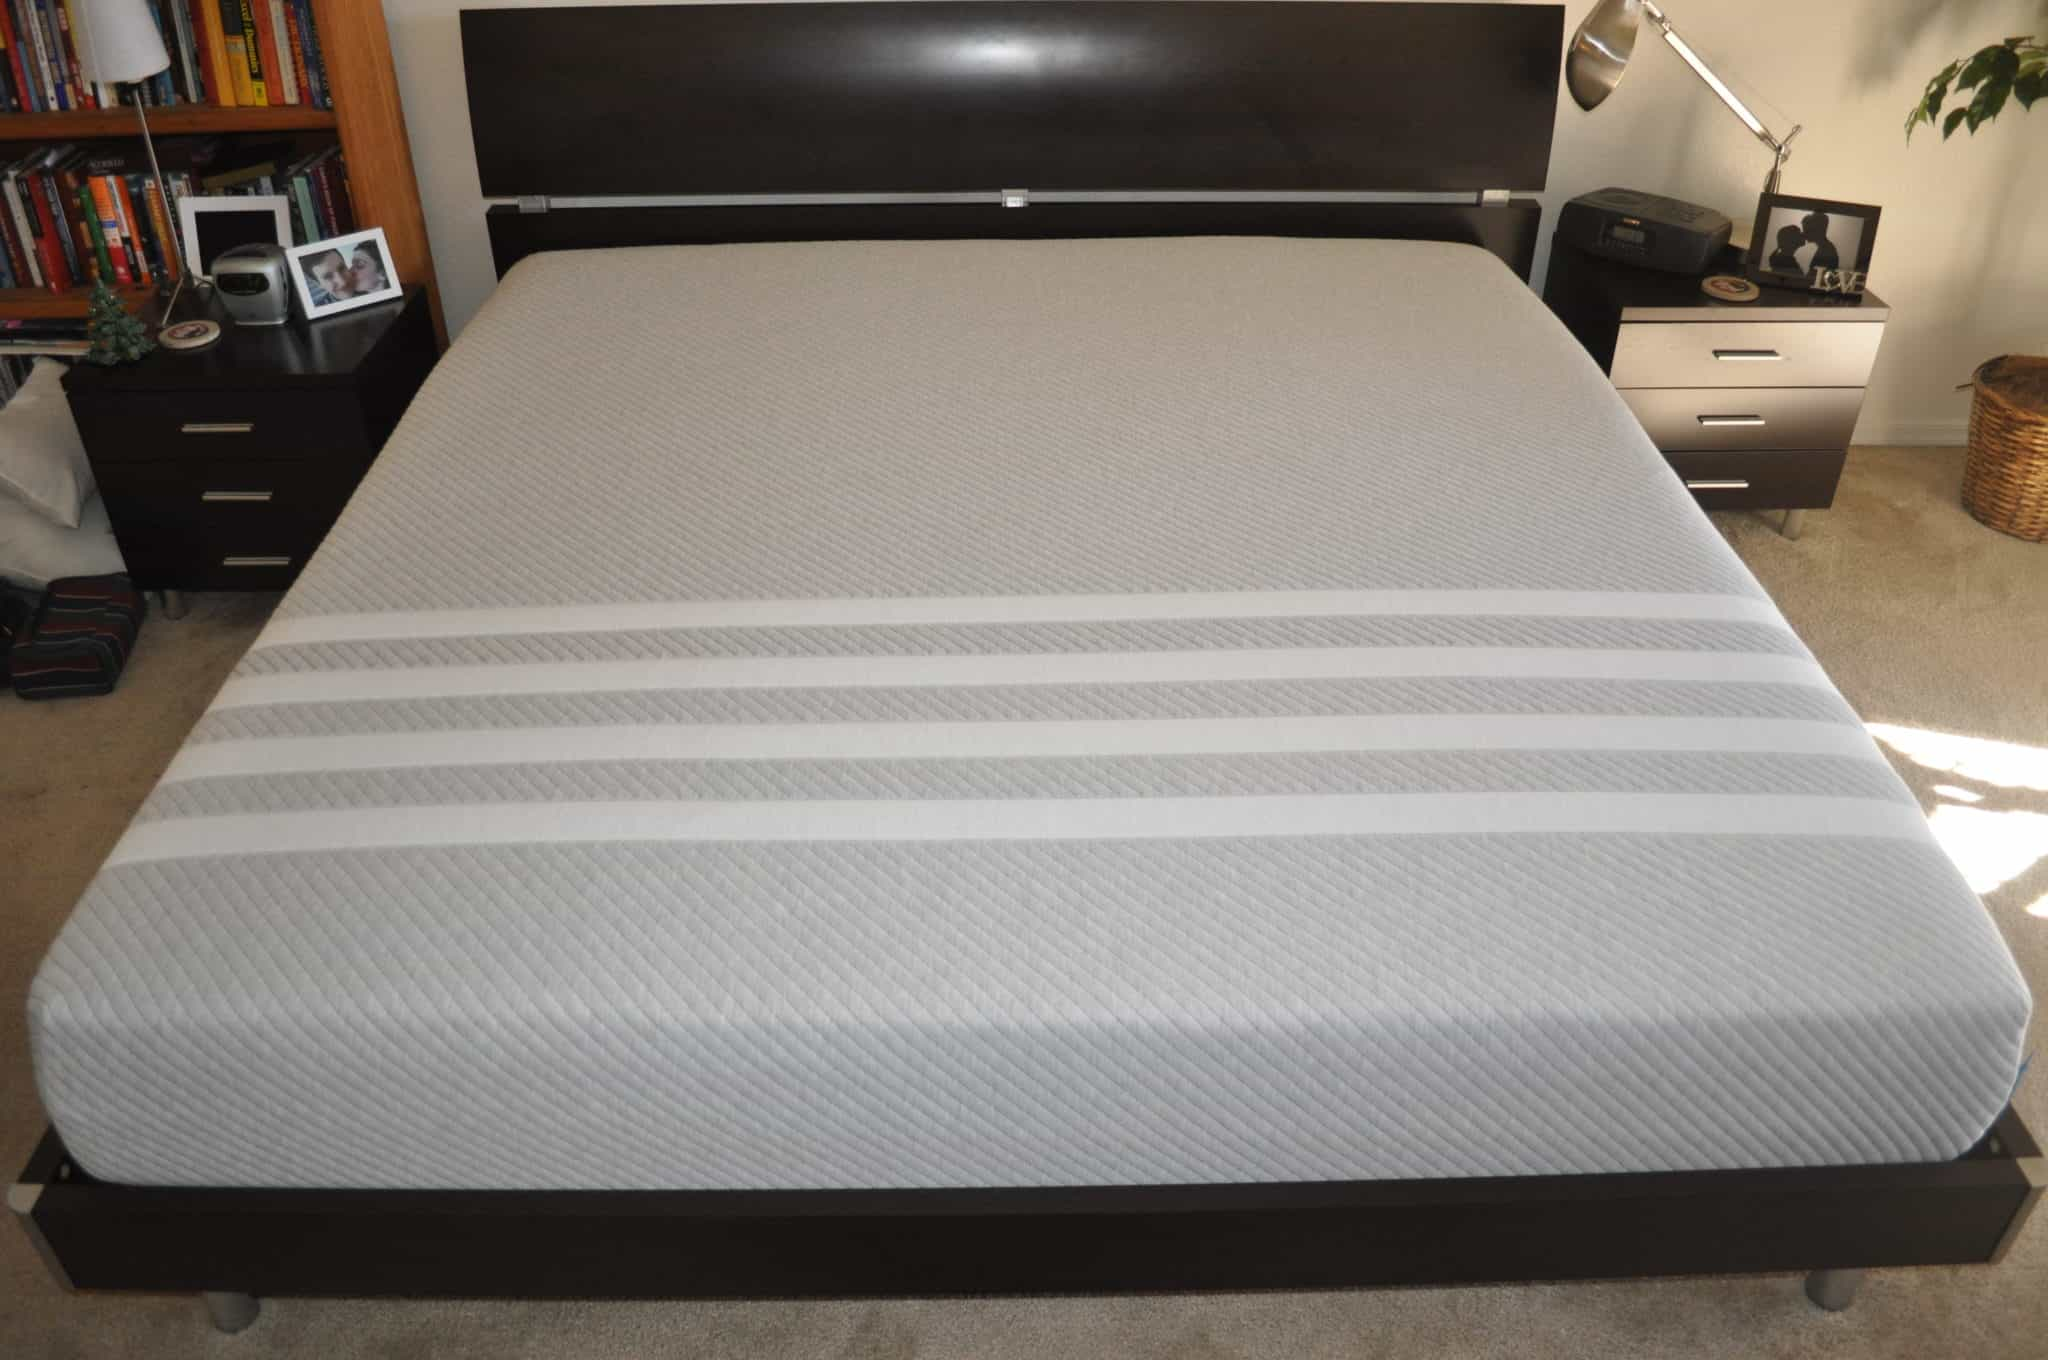 Leesa mattress review sleepopolis for Brooklyn bedding vs tempurpedic